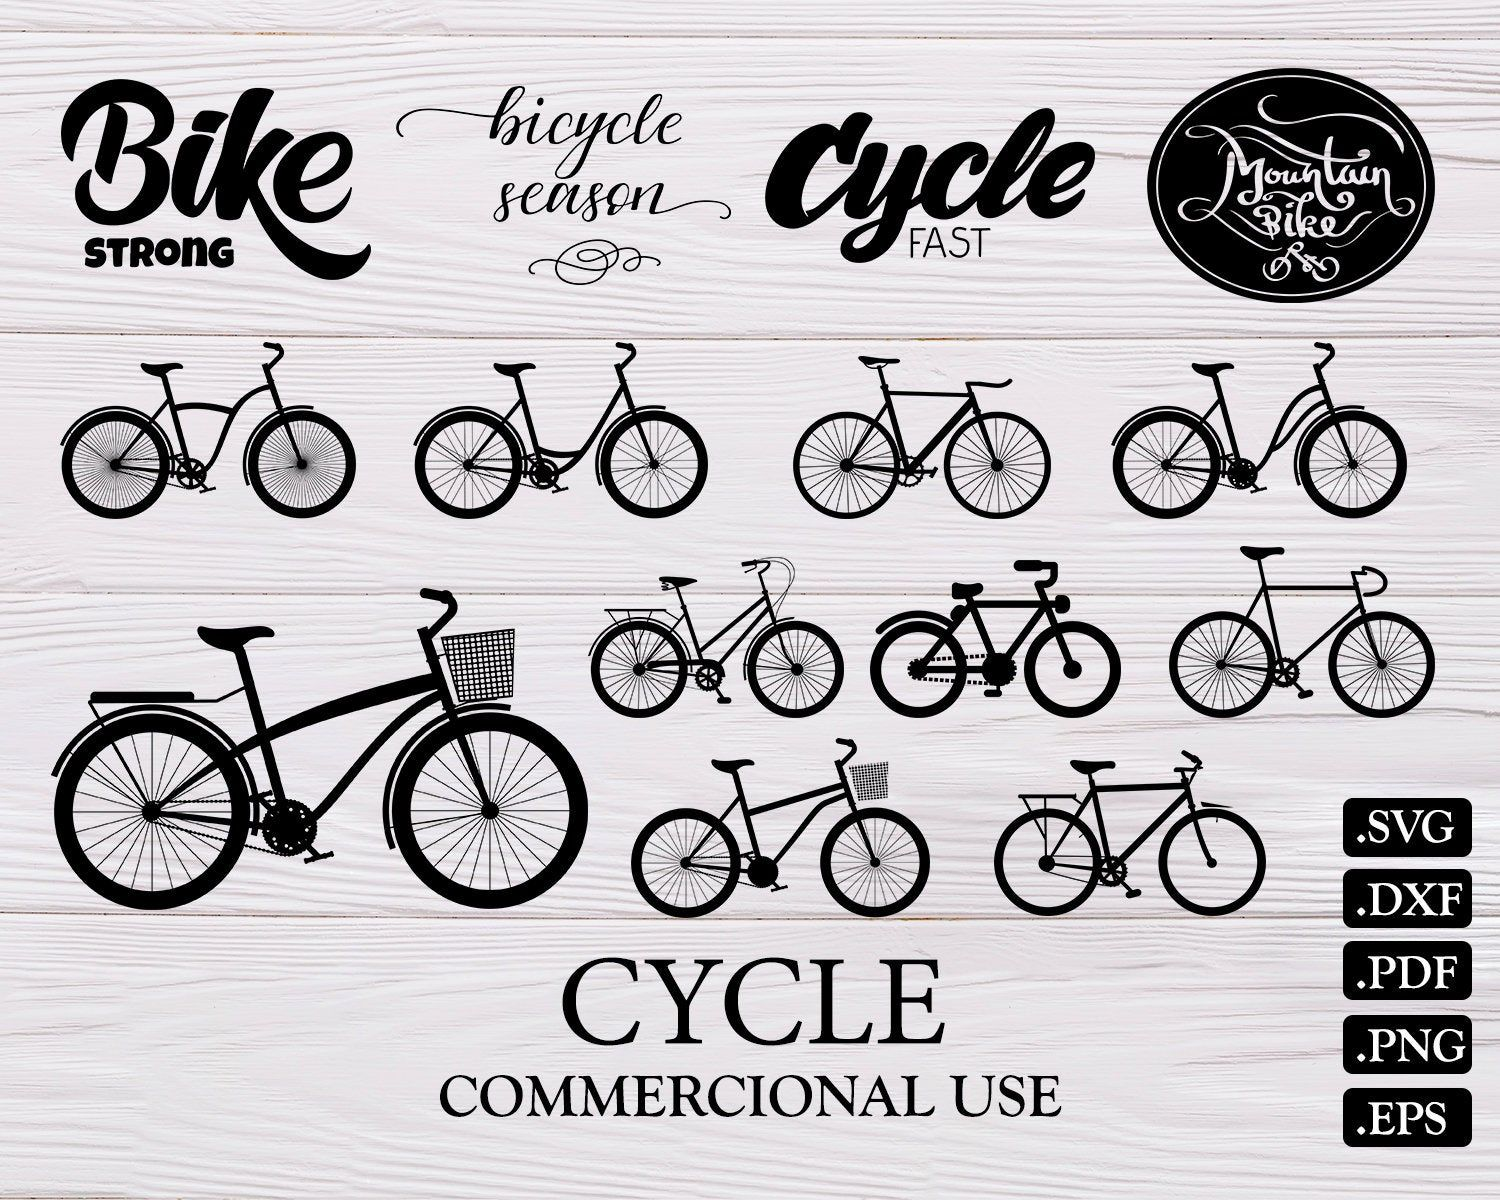 Bike Svg Cycling Dxf Biking Svg Vector Silhouette Bike Eps Bicycle Dxf Bicycle Svg Cut File Cycling Svg File